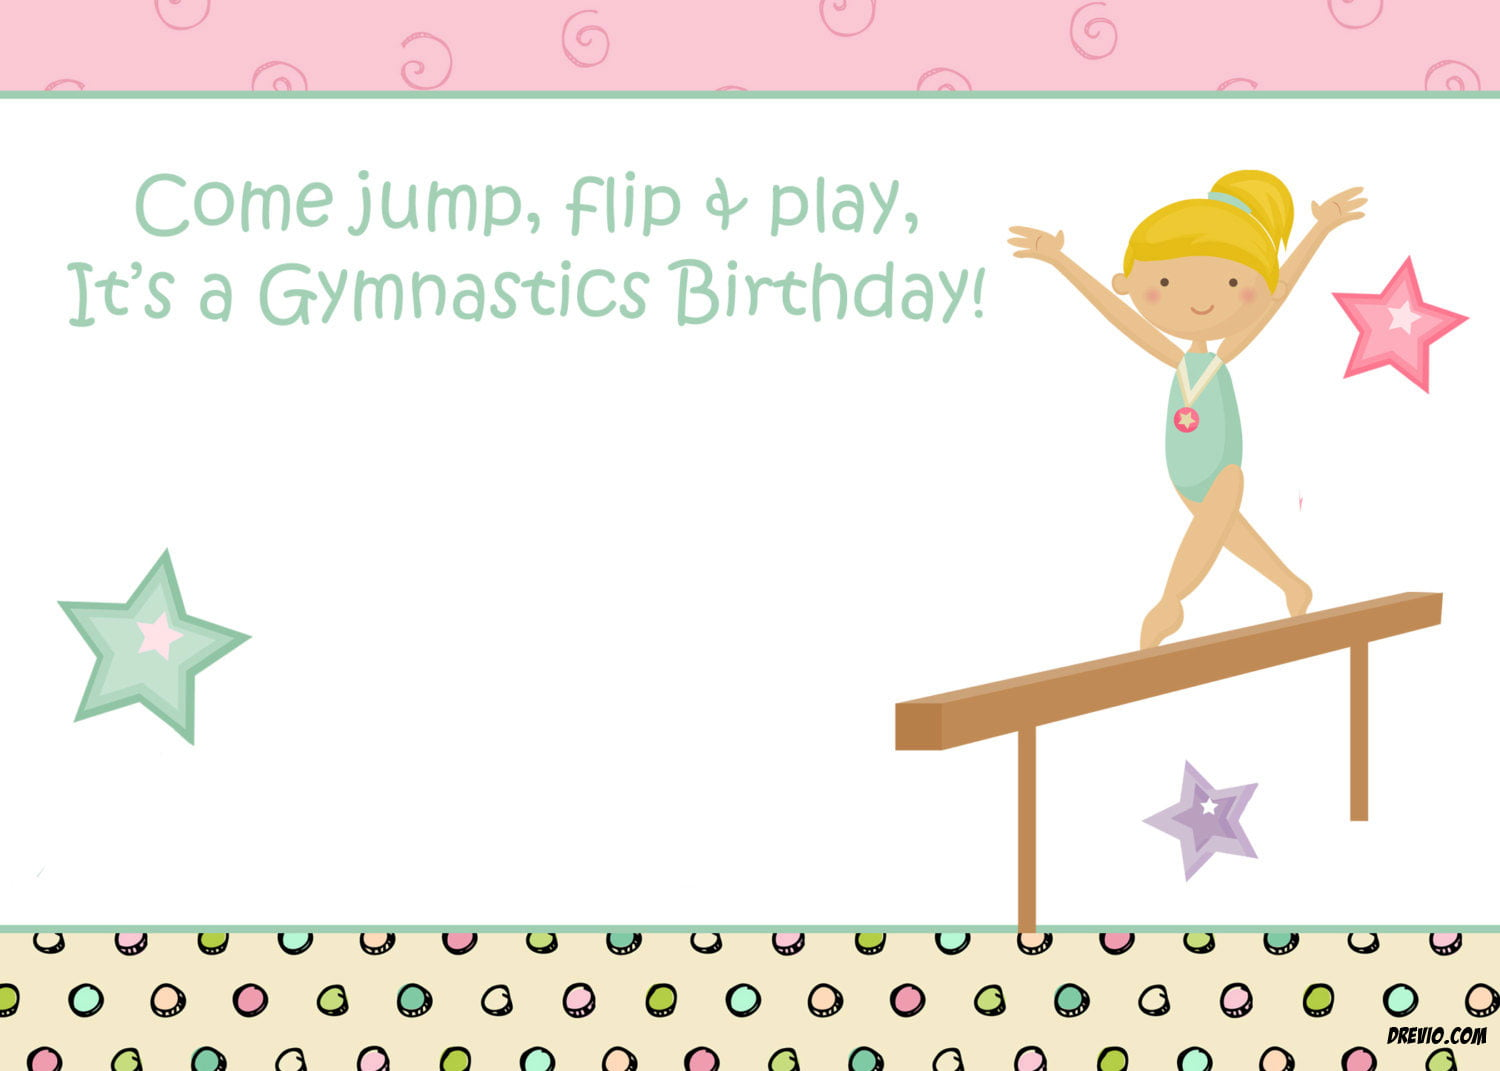 Free Printable Gymnastic Birthday Invitations – Updated! | Drevio ...